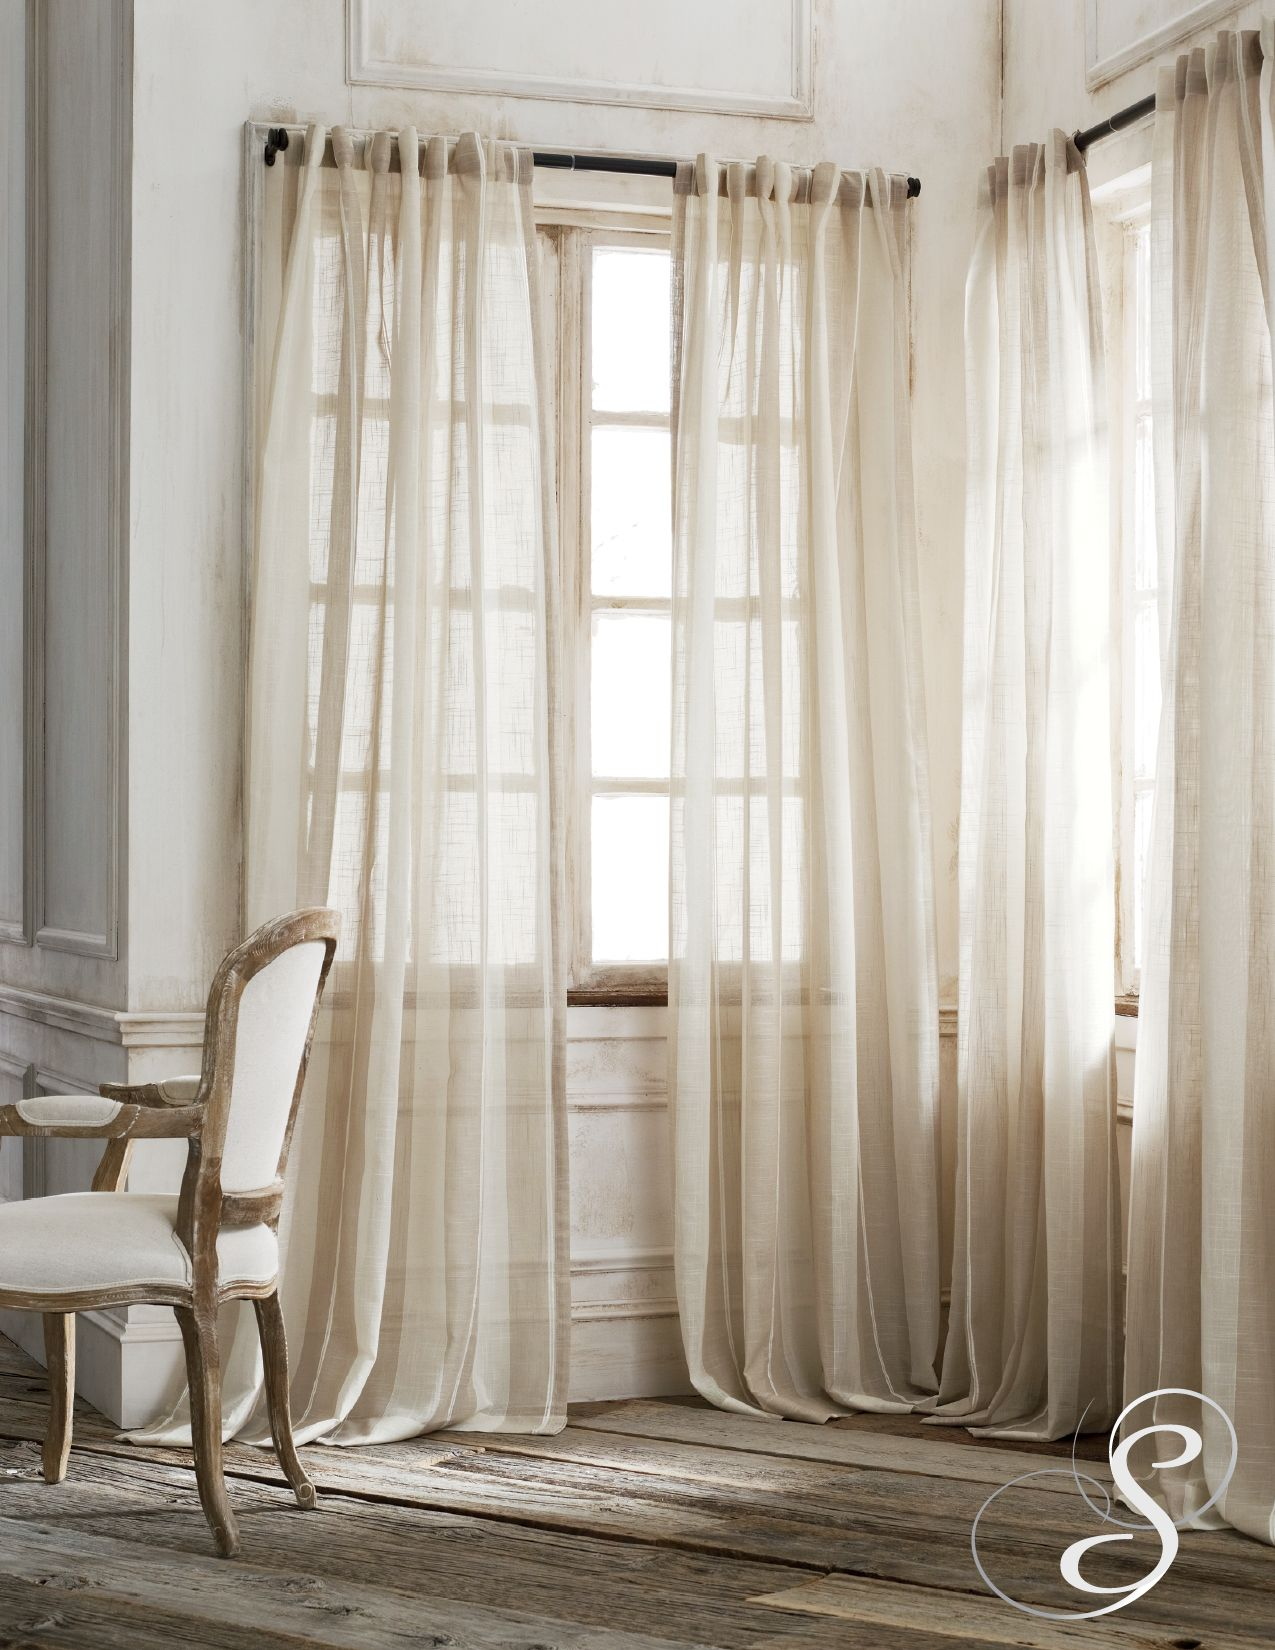 Homey Sheer Curtains For Front Door Windows And Sheer Curtain